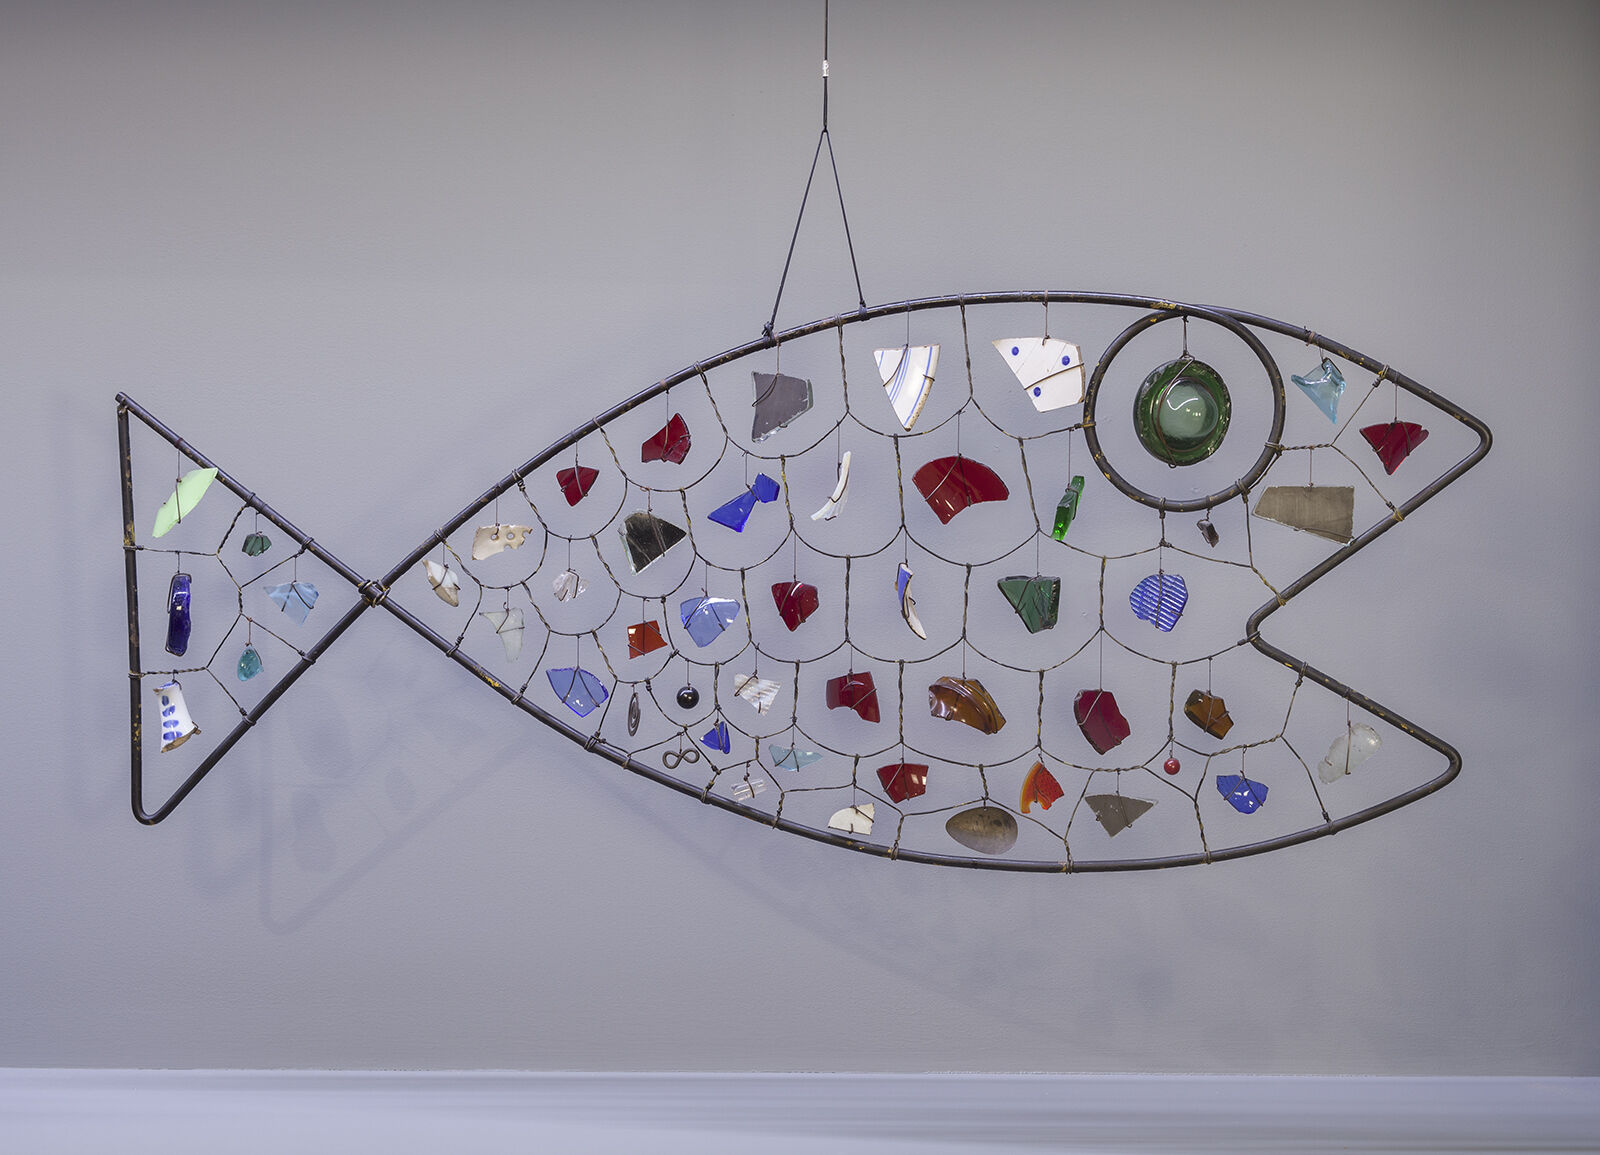 A sculpture of a fish made out of metal and wire.